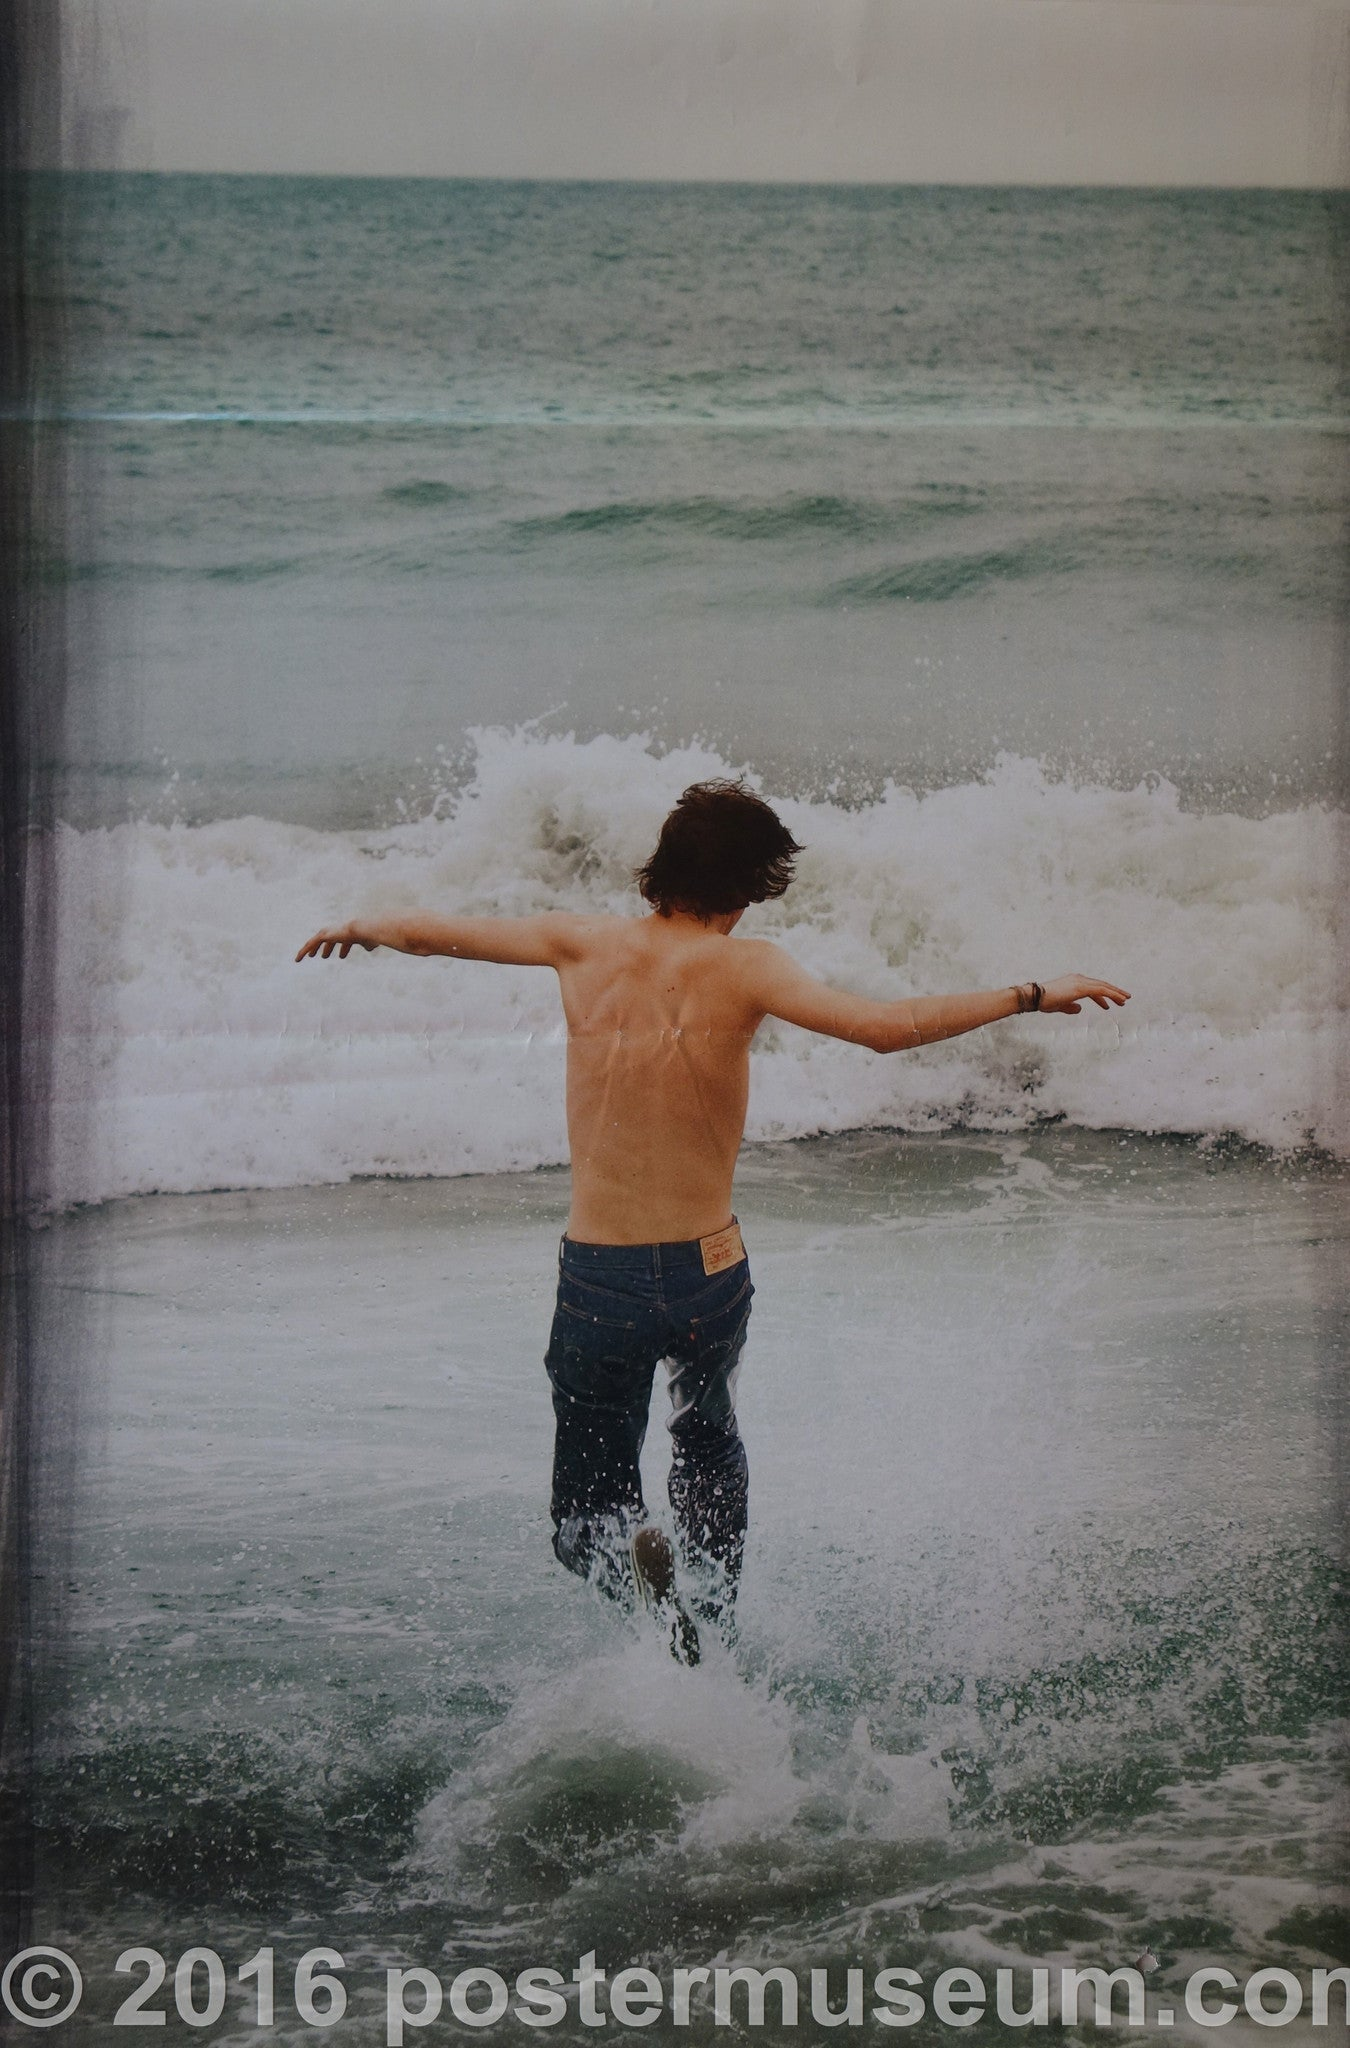 Levi's Running into the Ocean